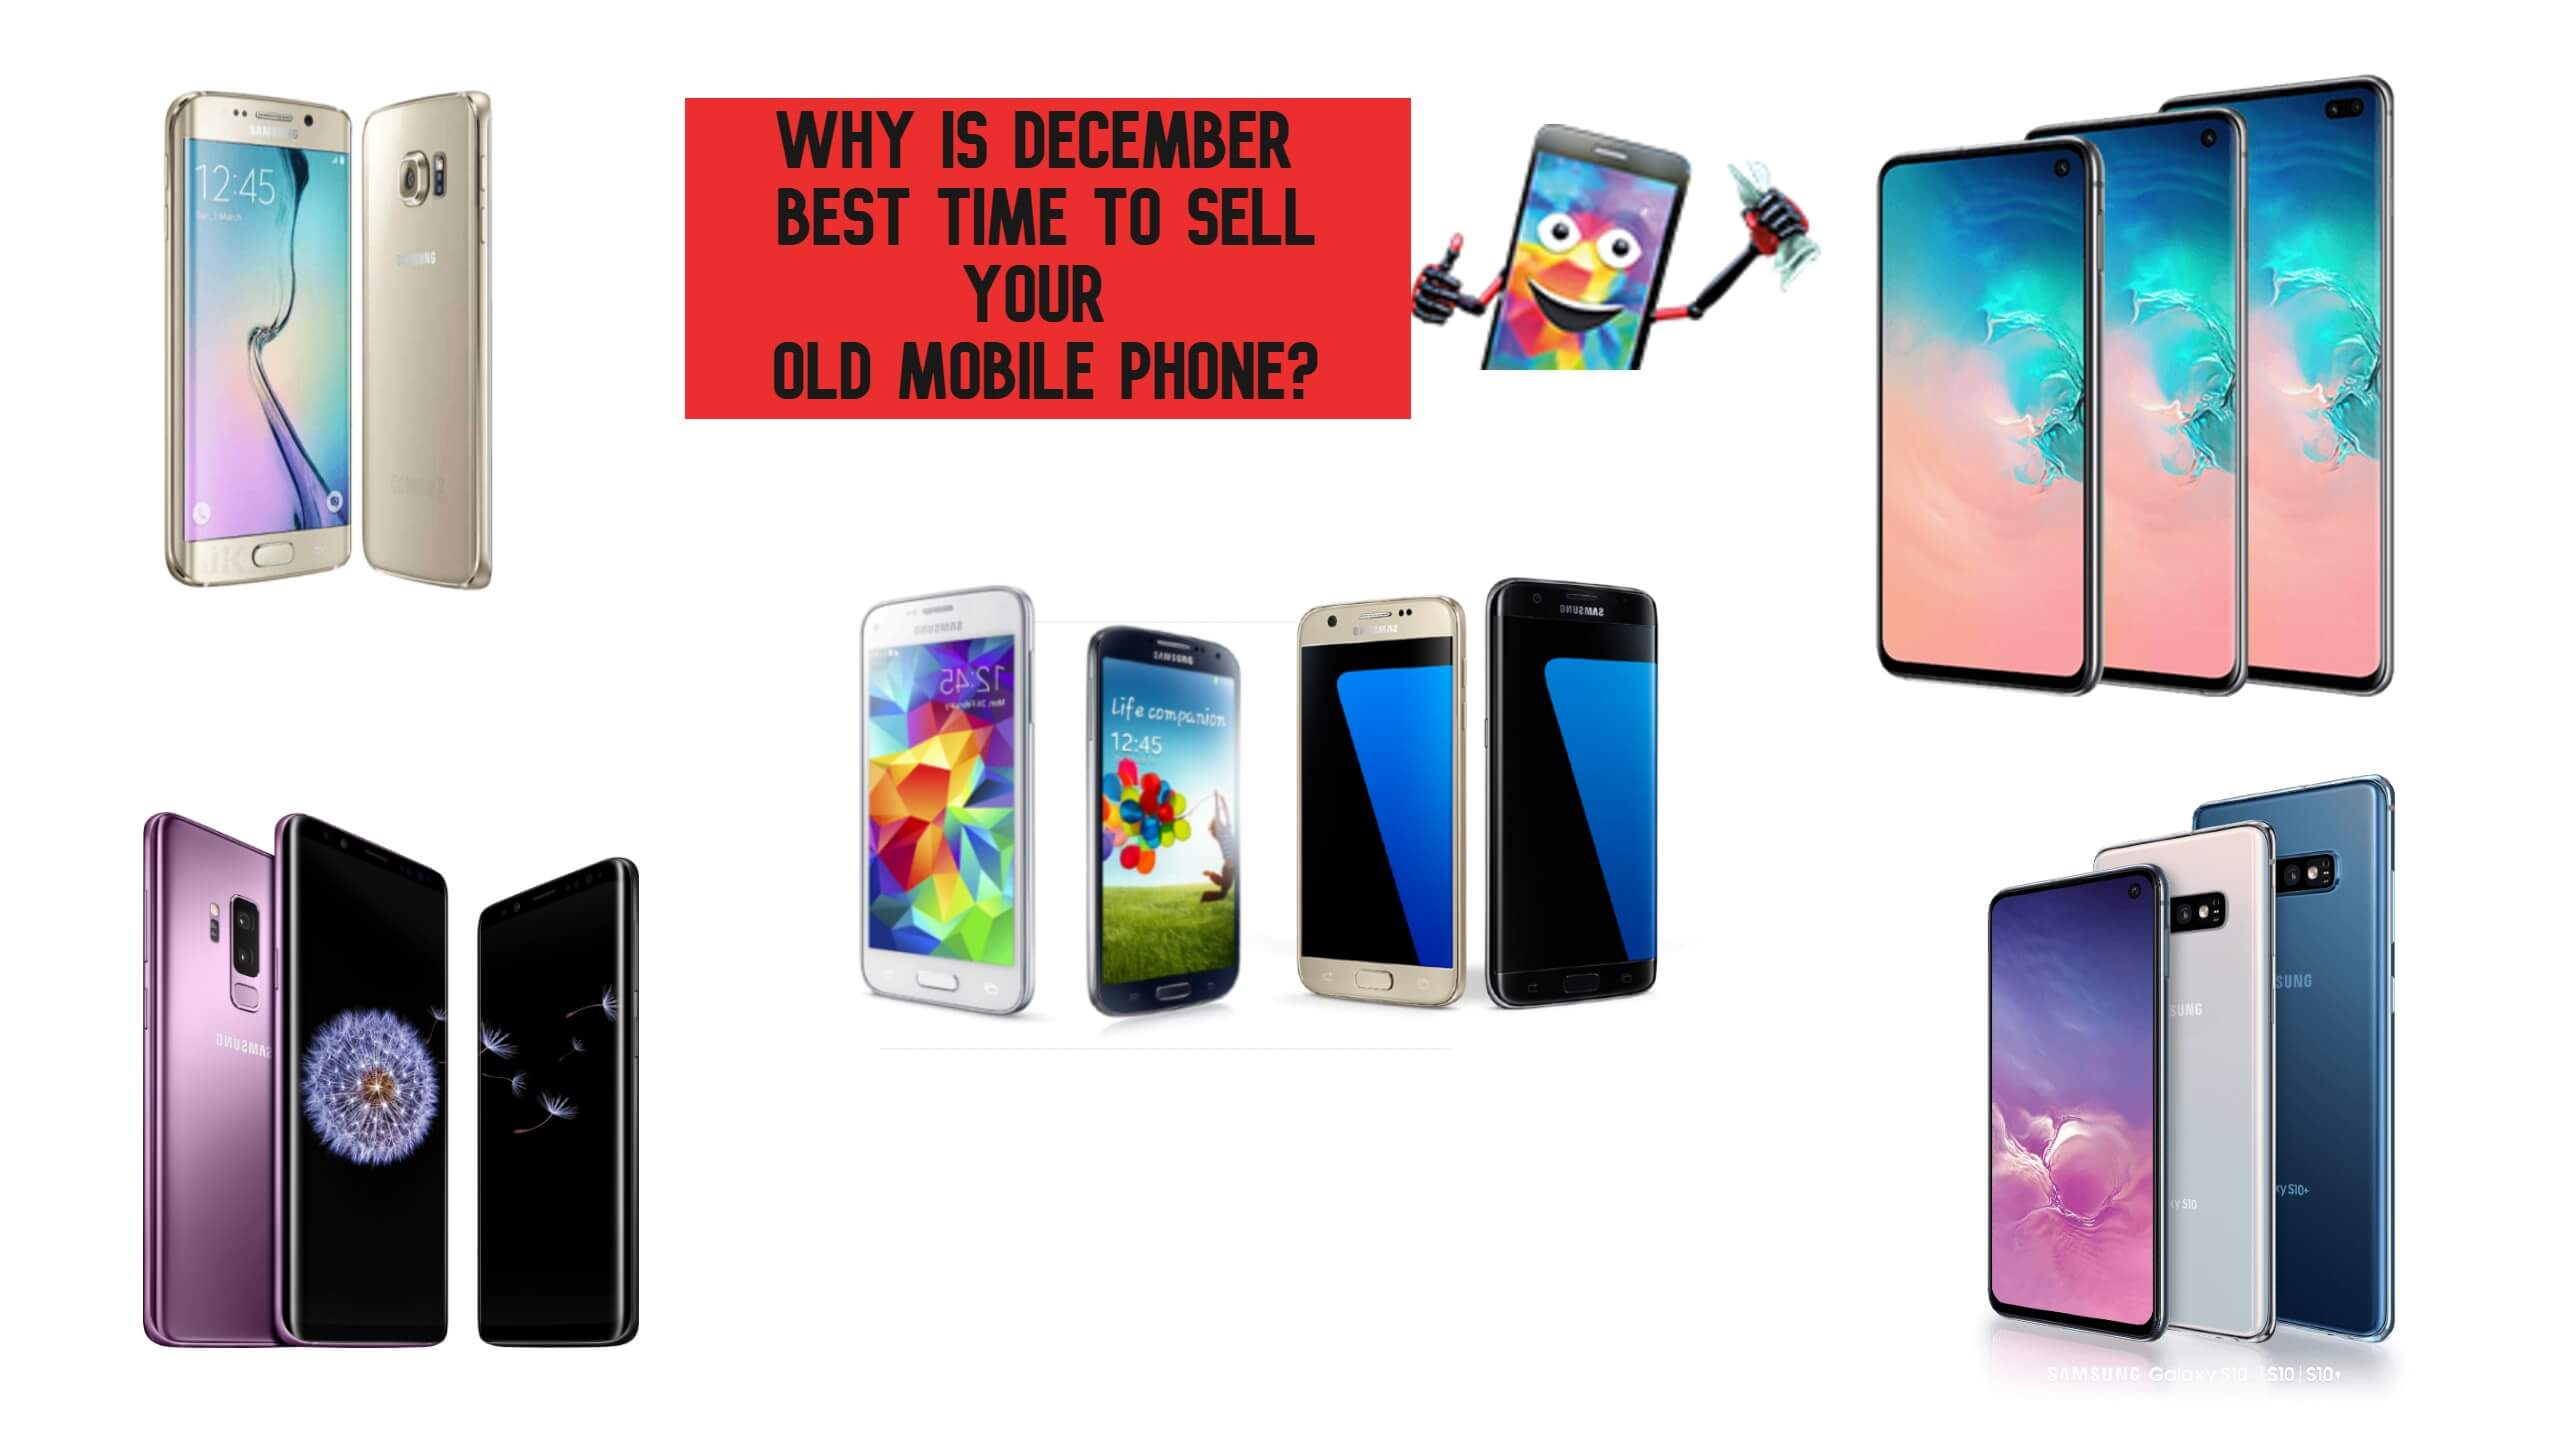 Why is December best time to sell your old mobile phone